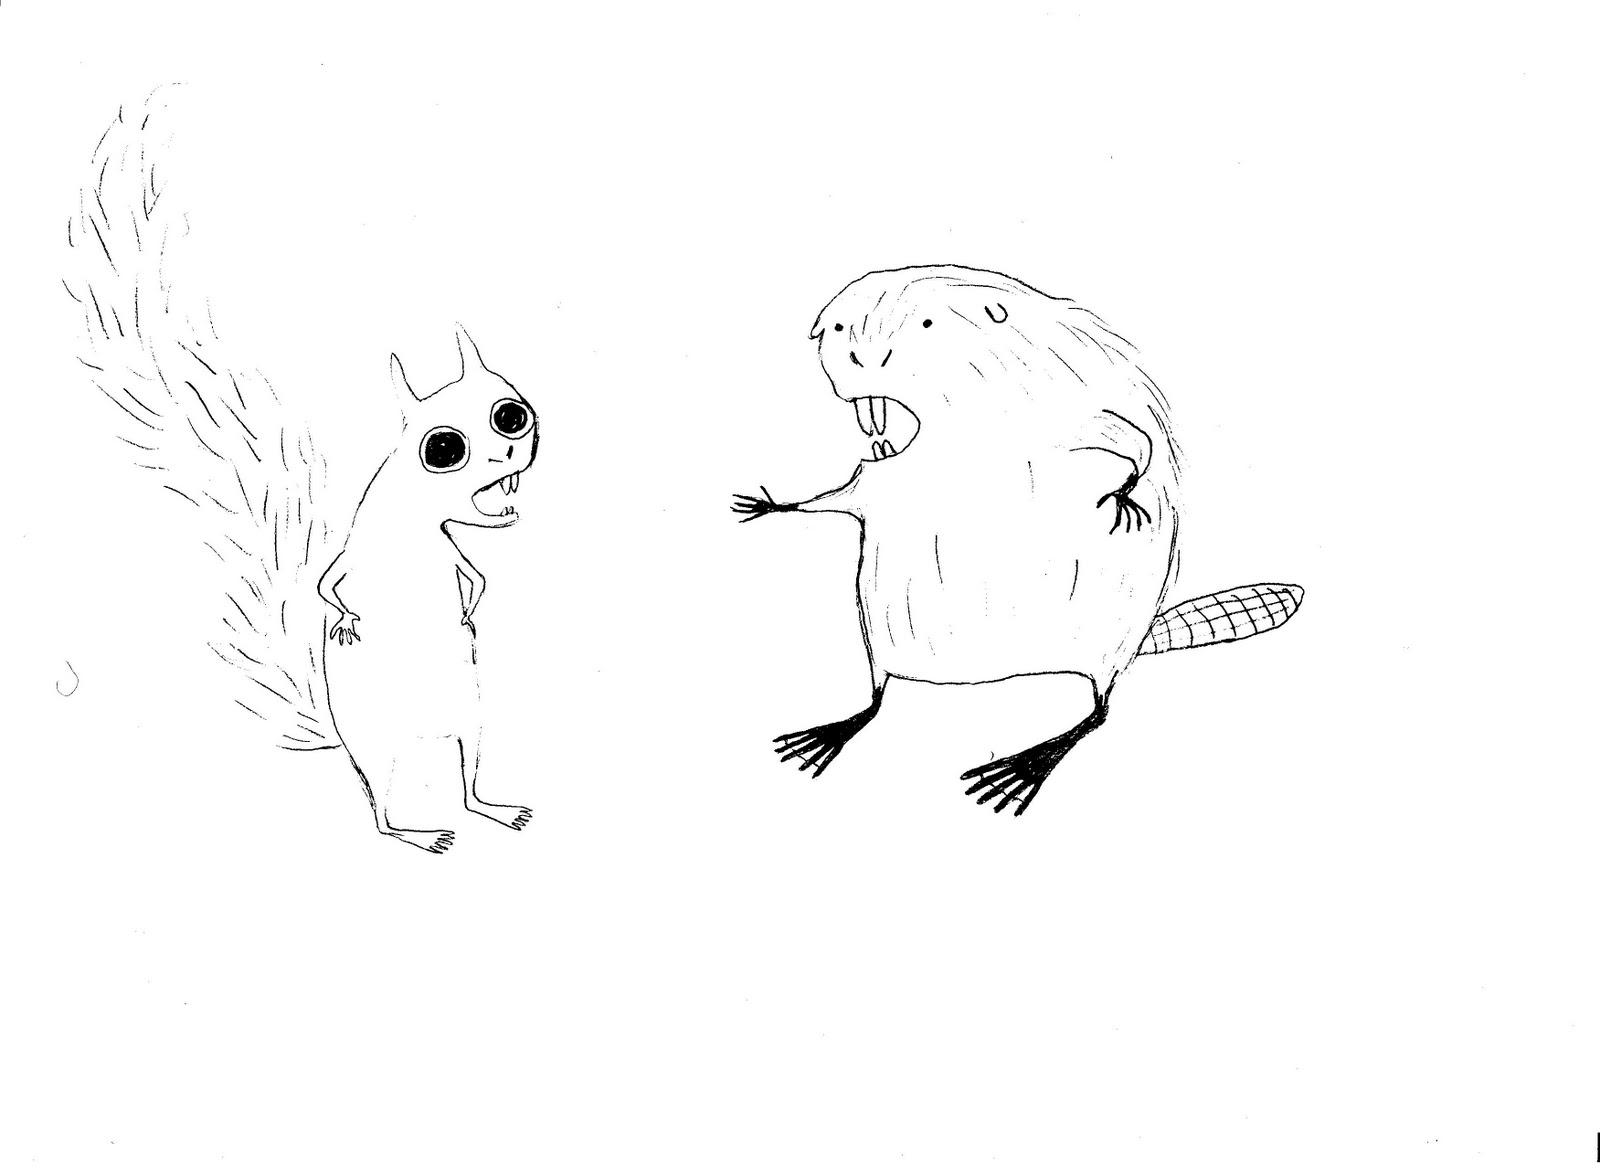 I hate butterflies: beaver and photoshop tests